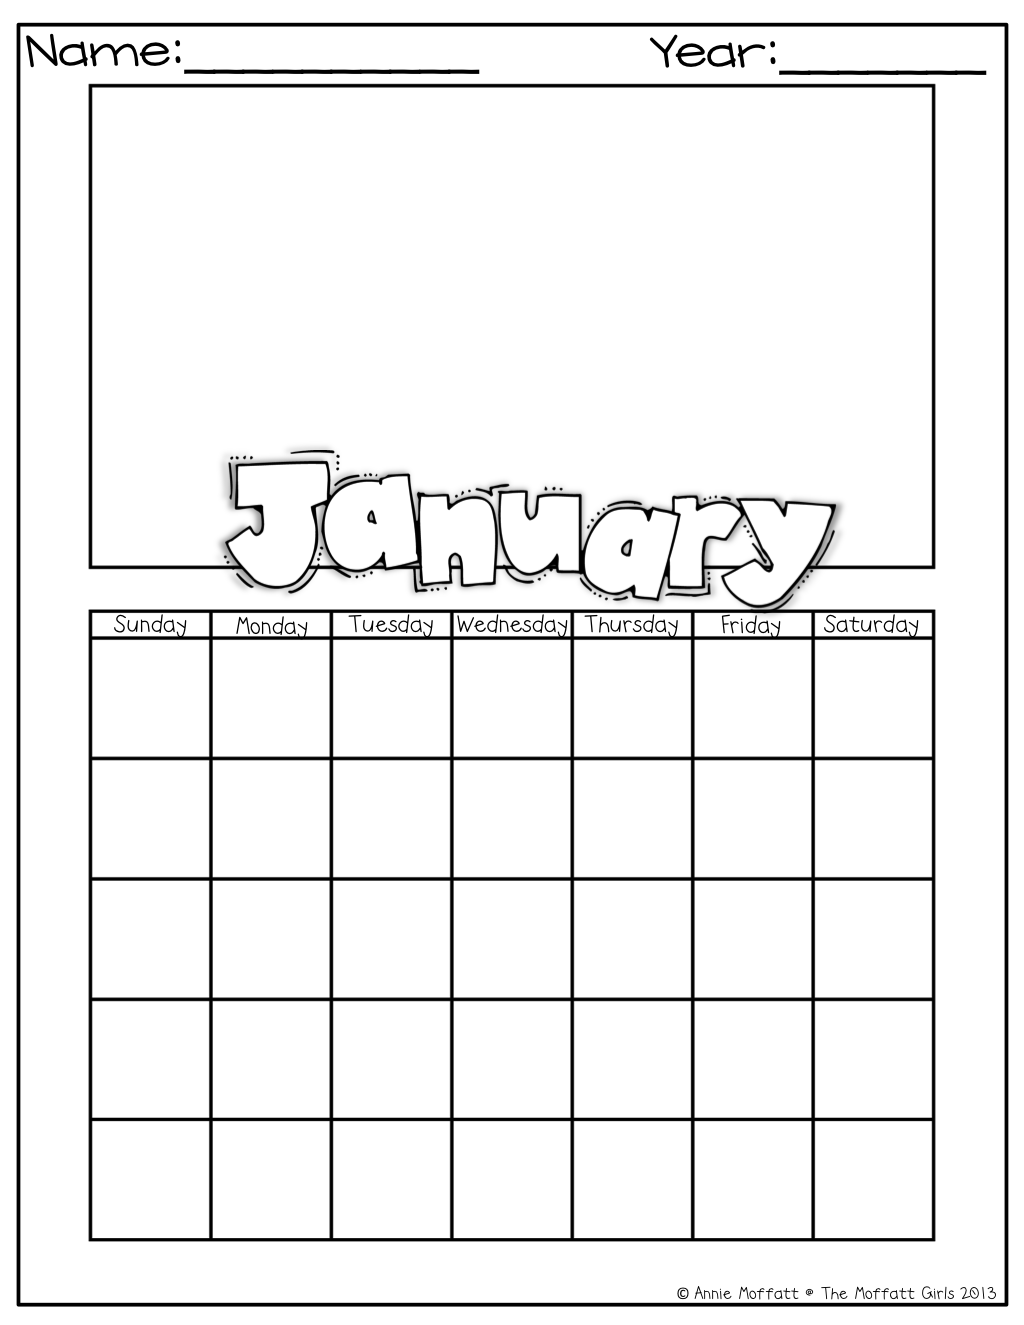 My January Calendar I Can Fill In The Dates And